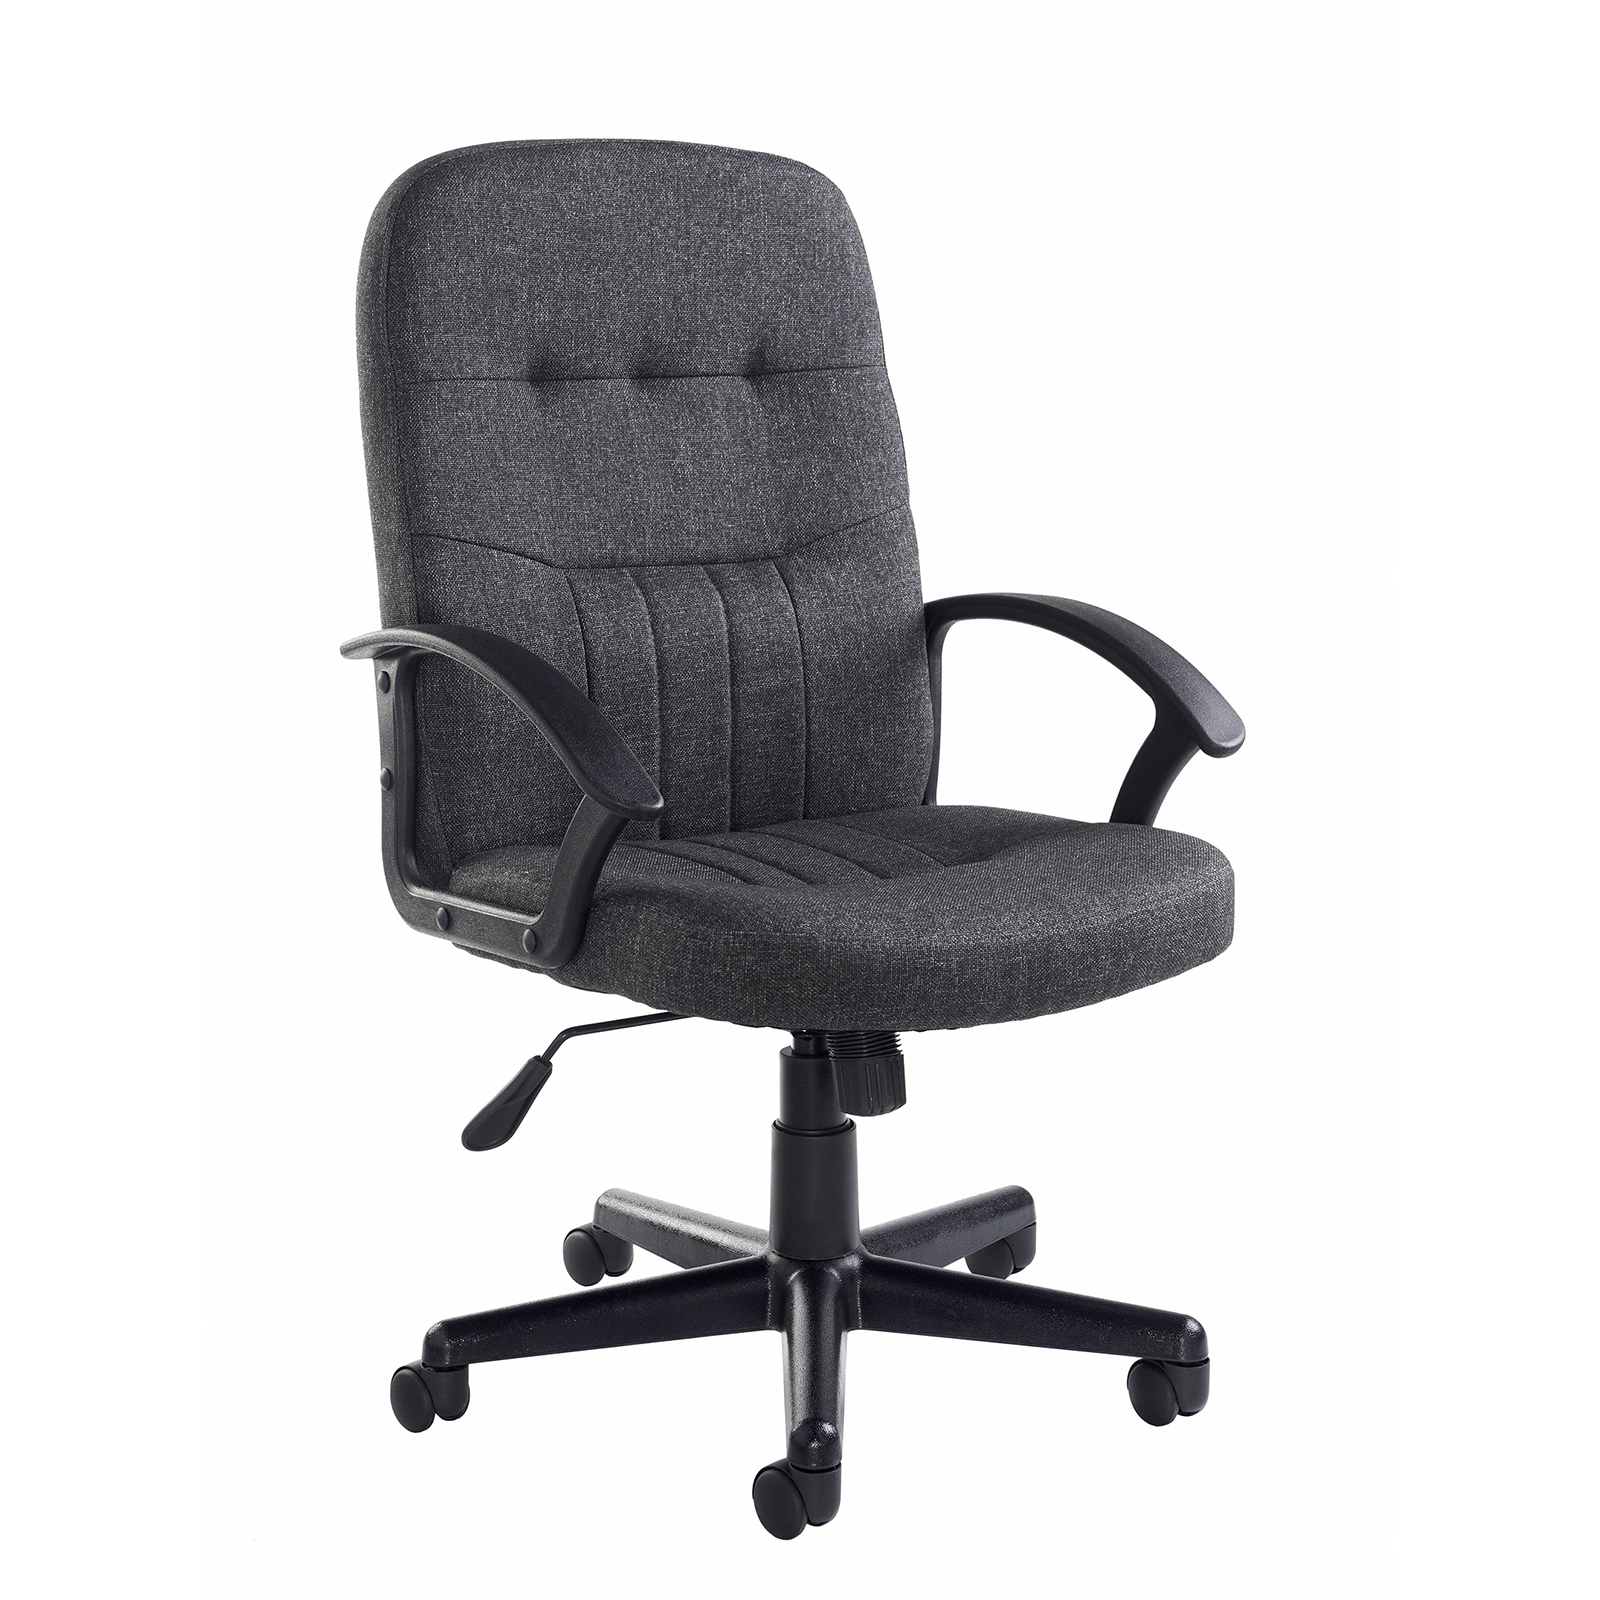 Desk Chairs Cavalier fabric managers chair - charcoal